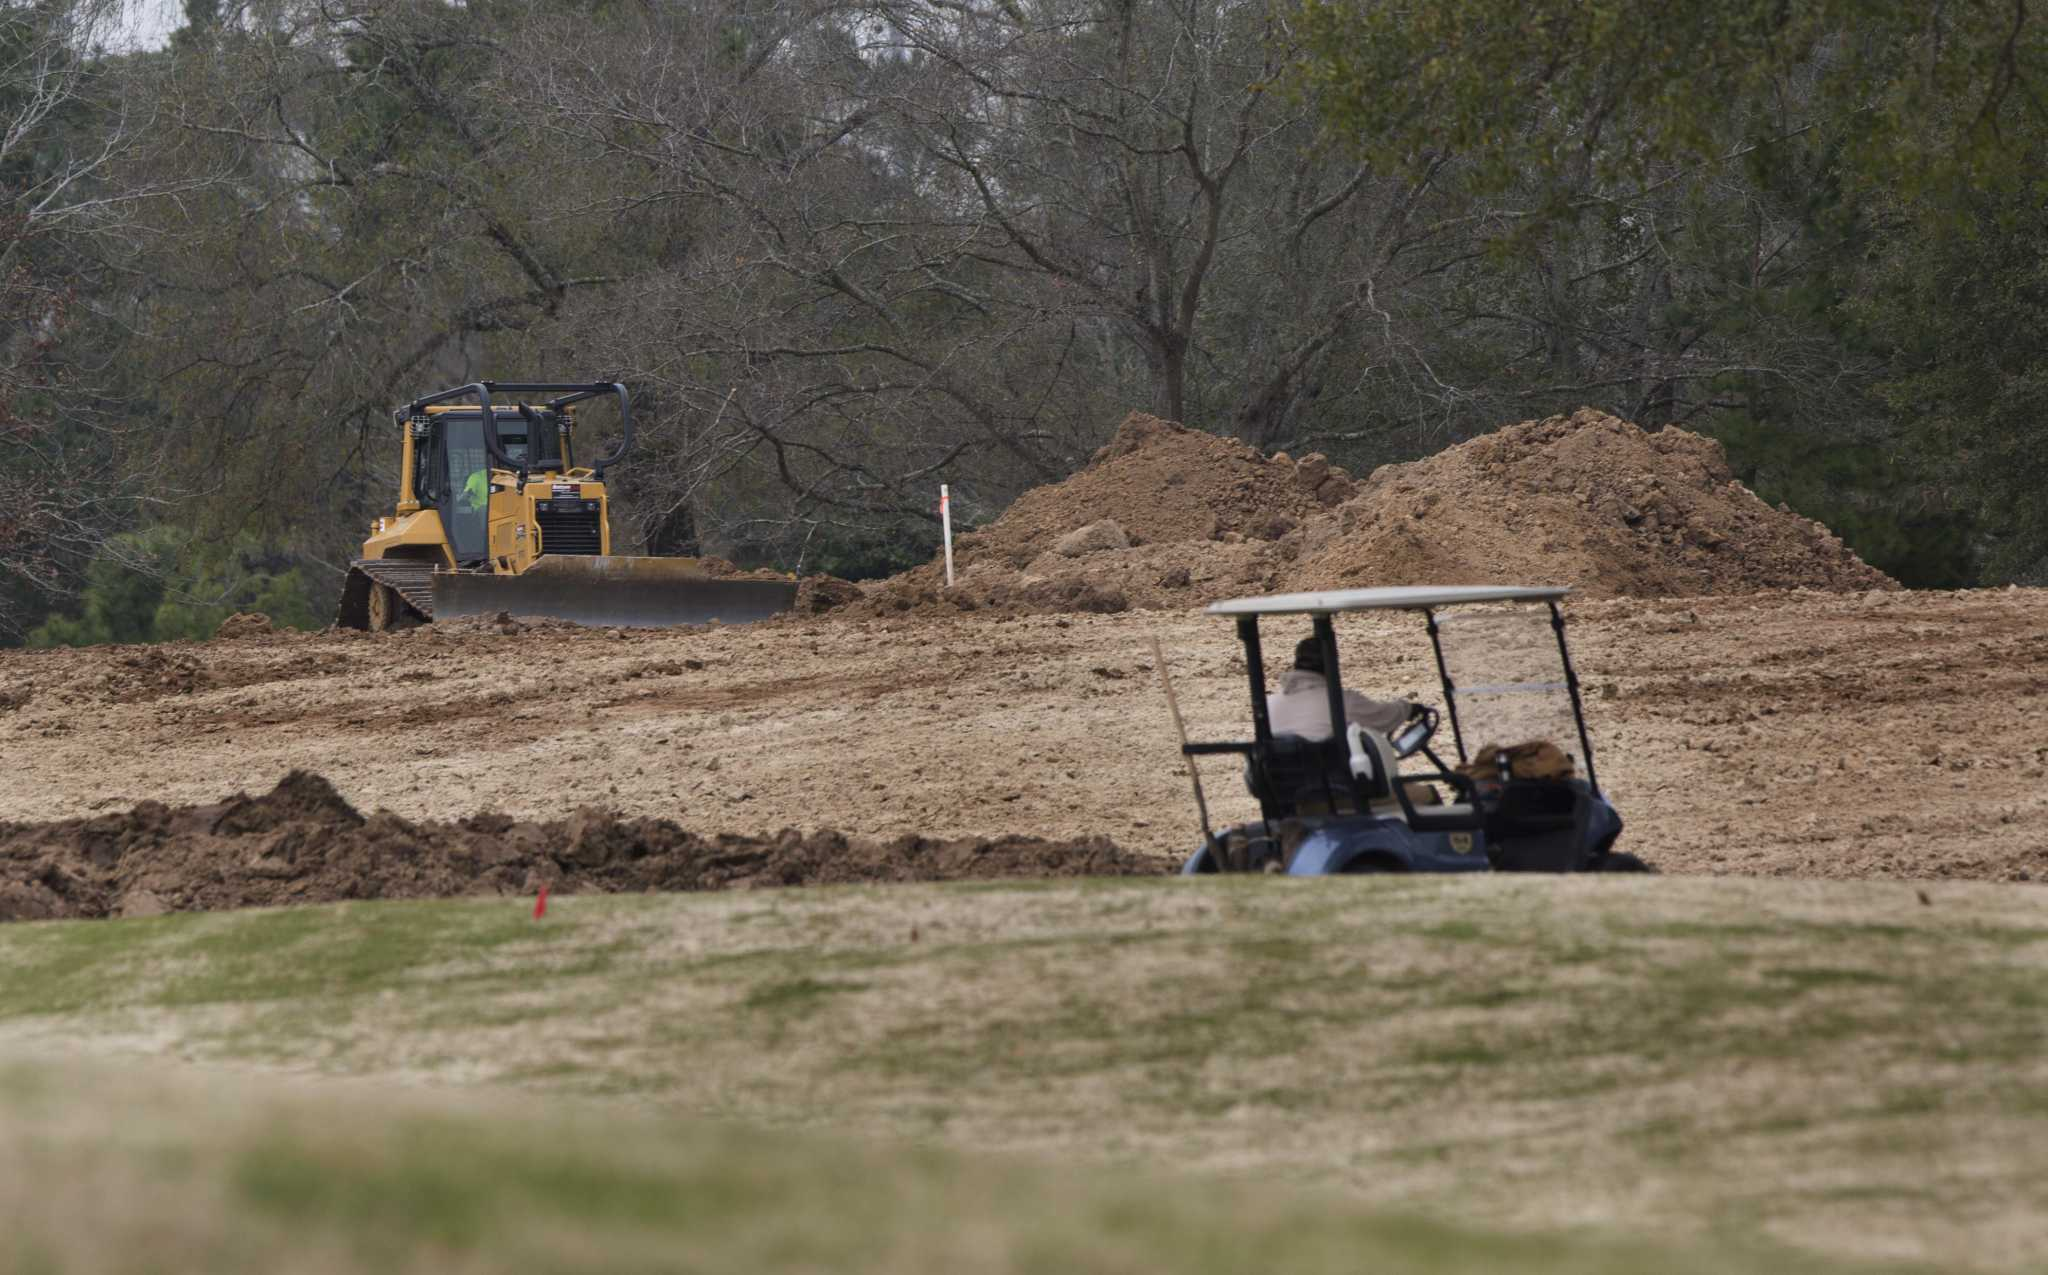 With eyes on Houston Open's 2020 move to Memorial, 2019 dates set for Golf Club